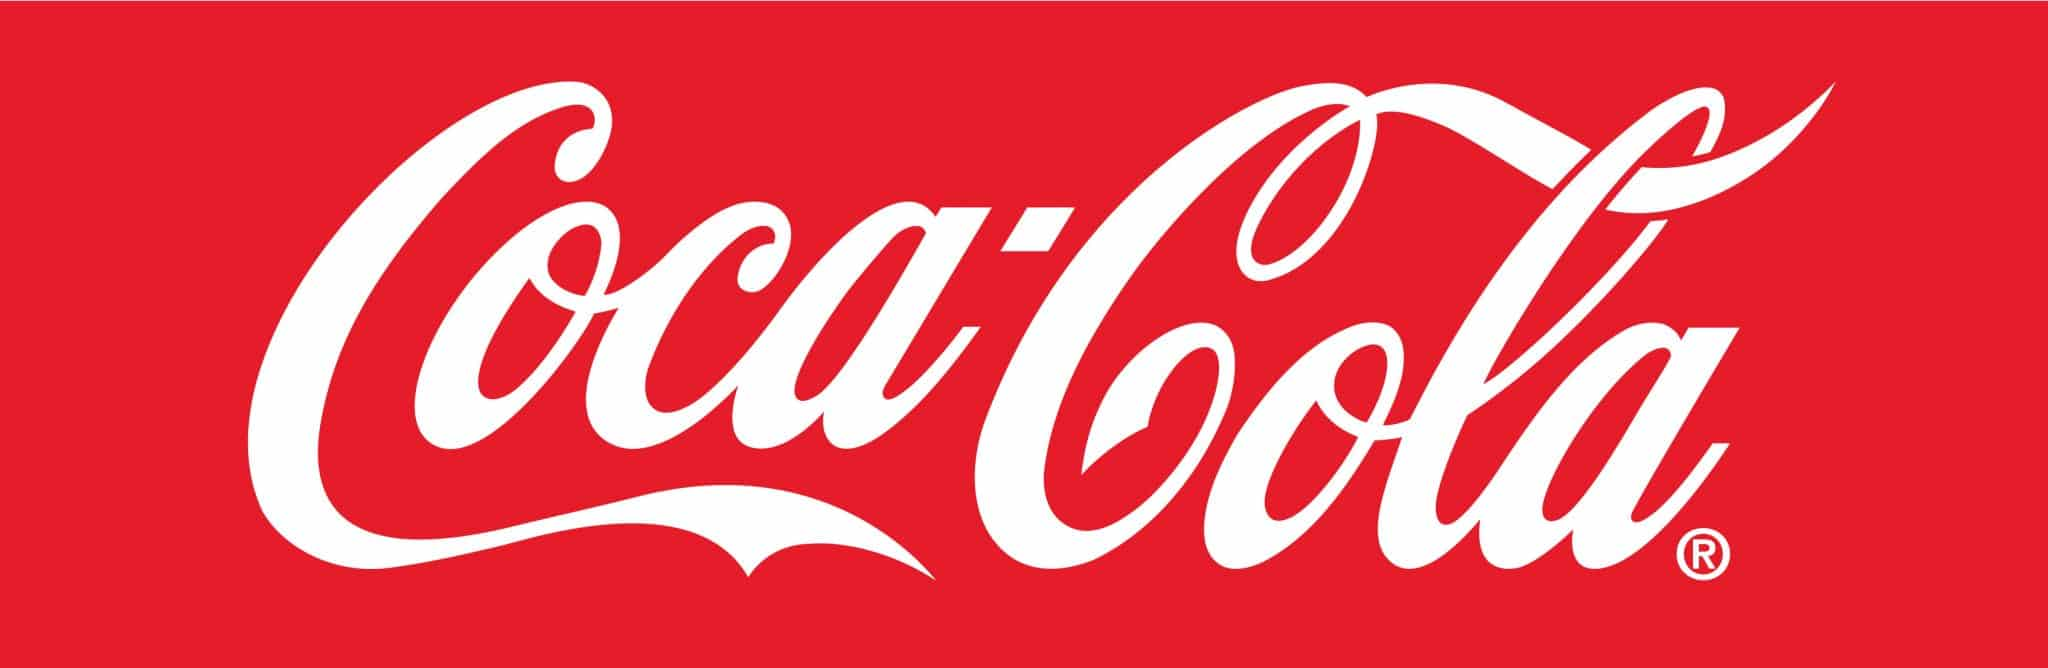 cocacola_cropped